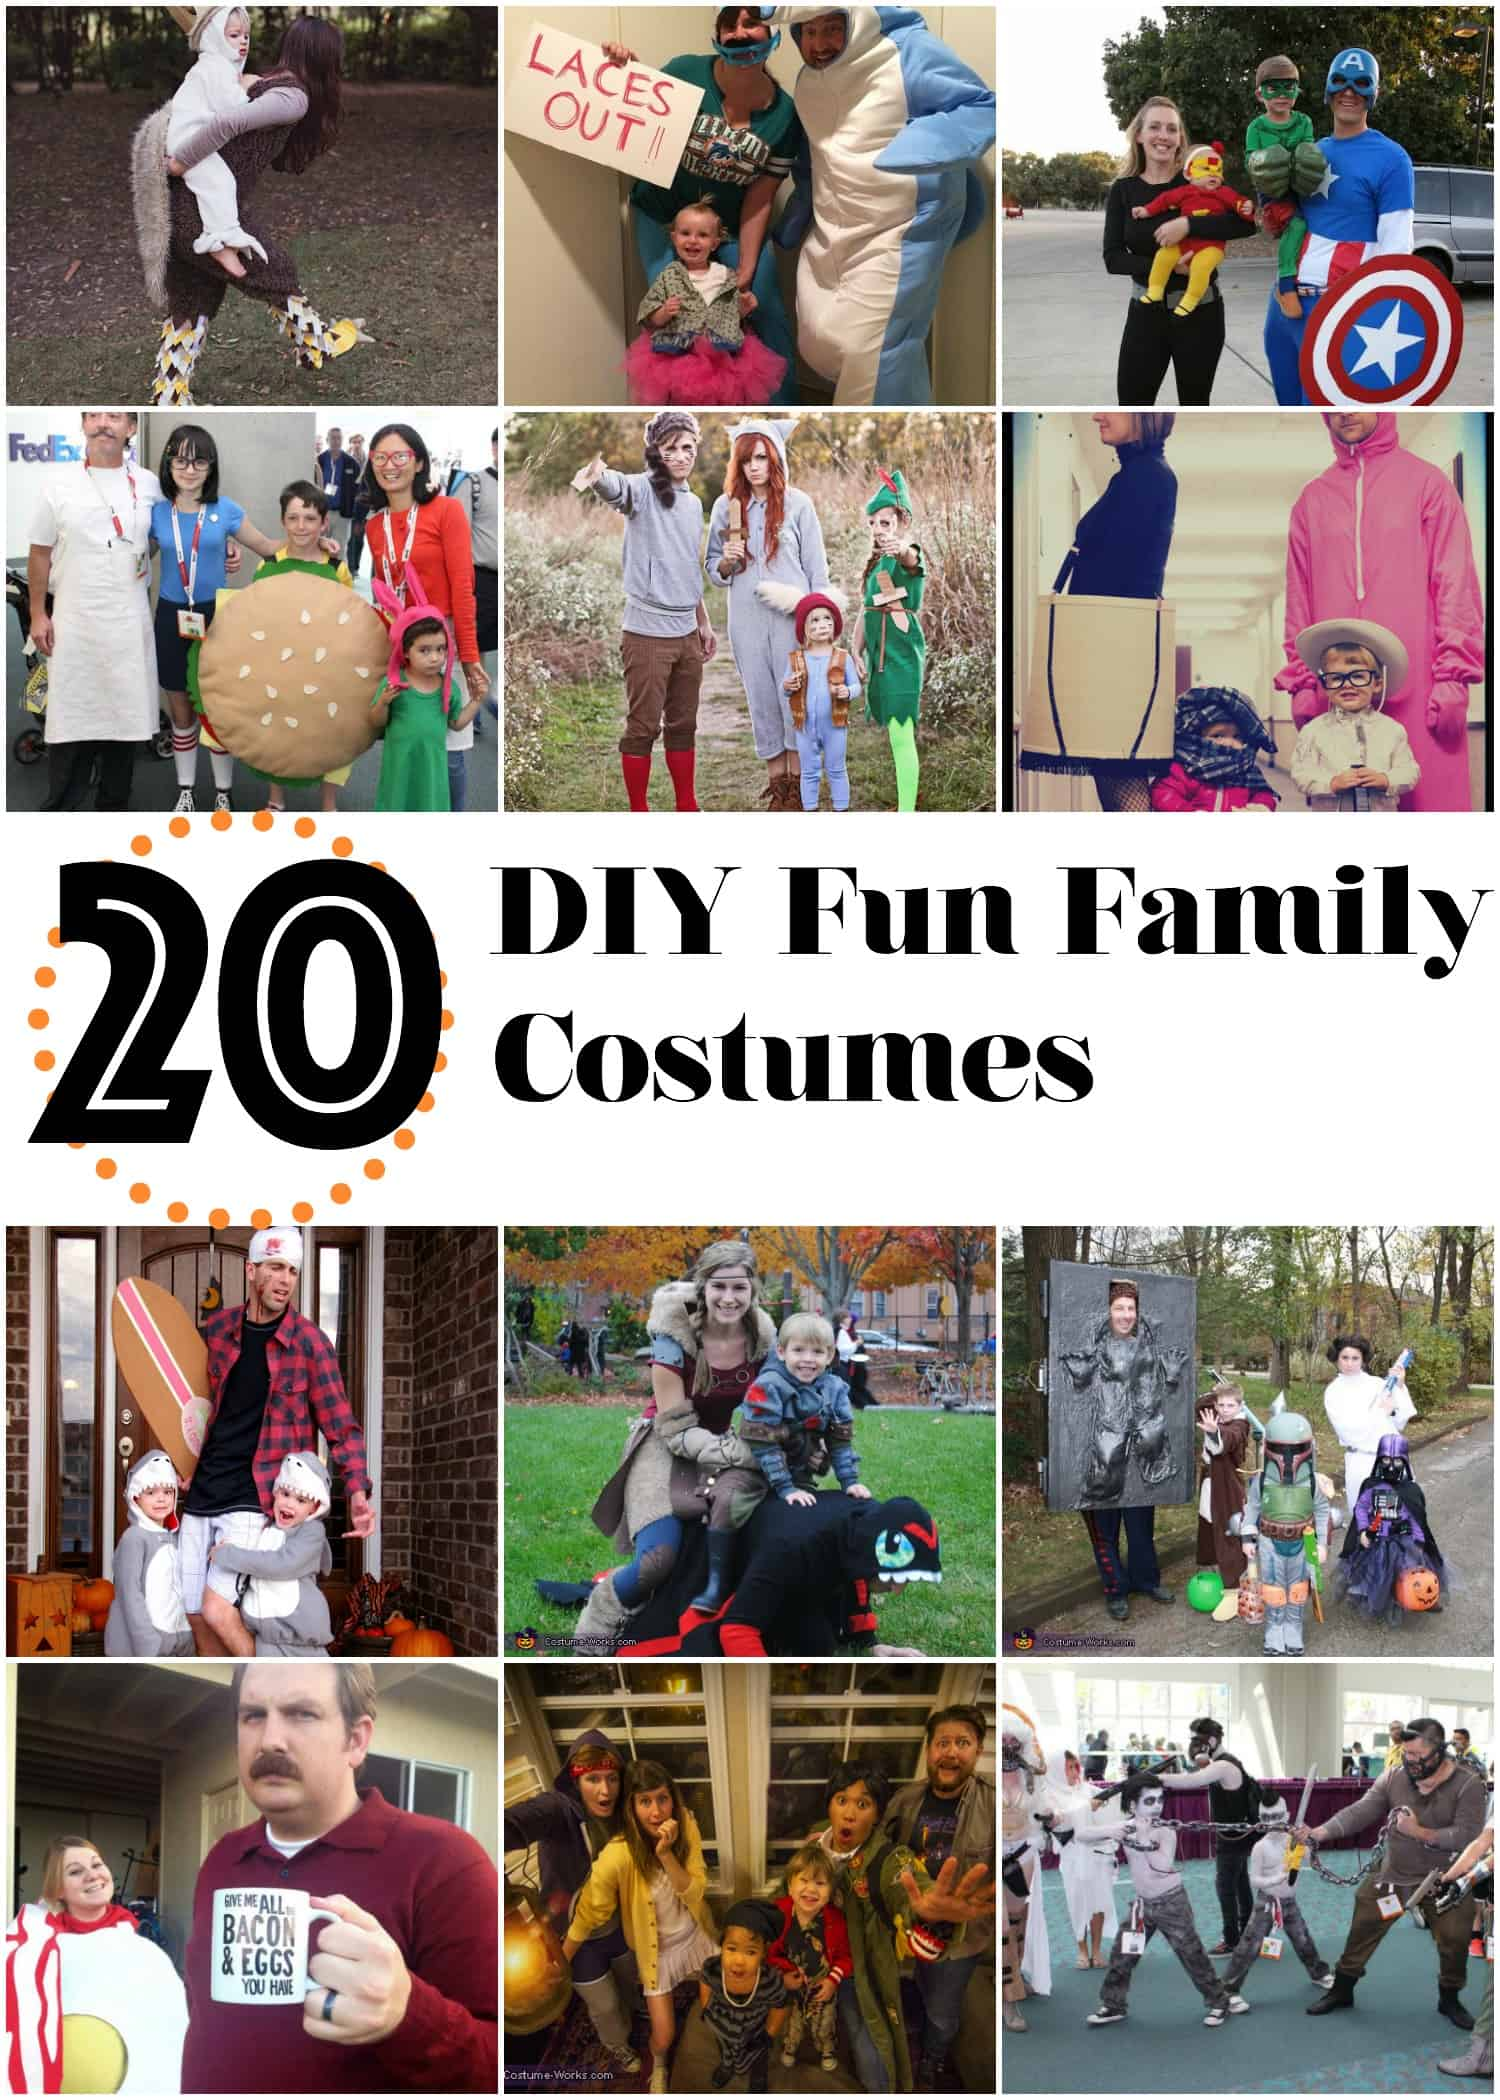 20 DIY Family Halloween Costumes & 20 DIY Fun Family Costumes - The Cow Country Housewife